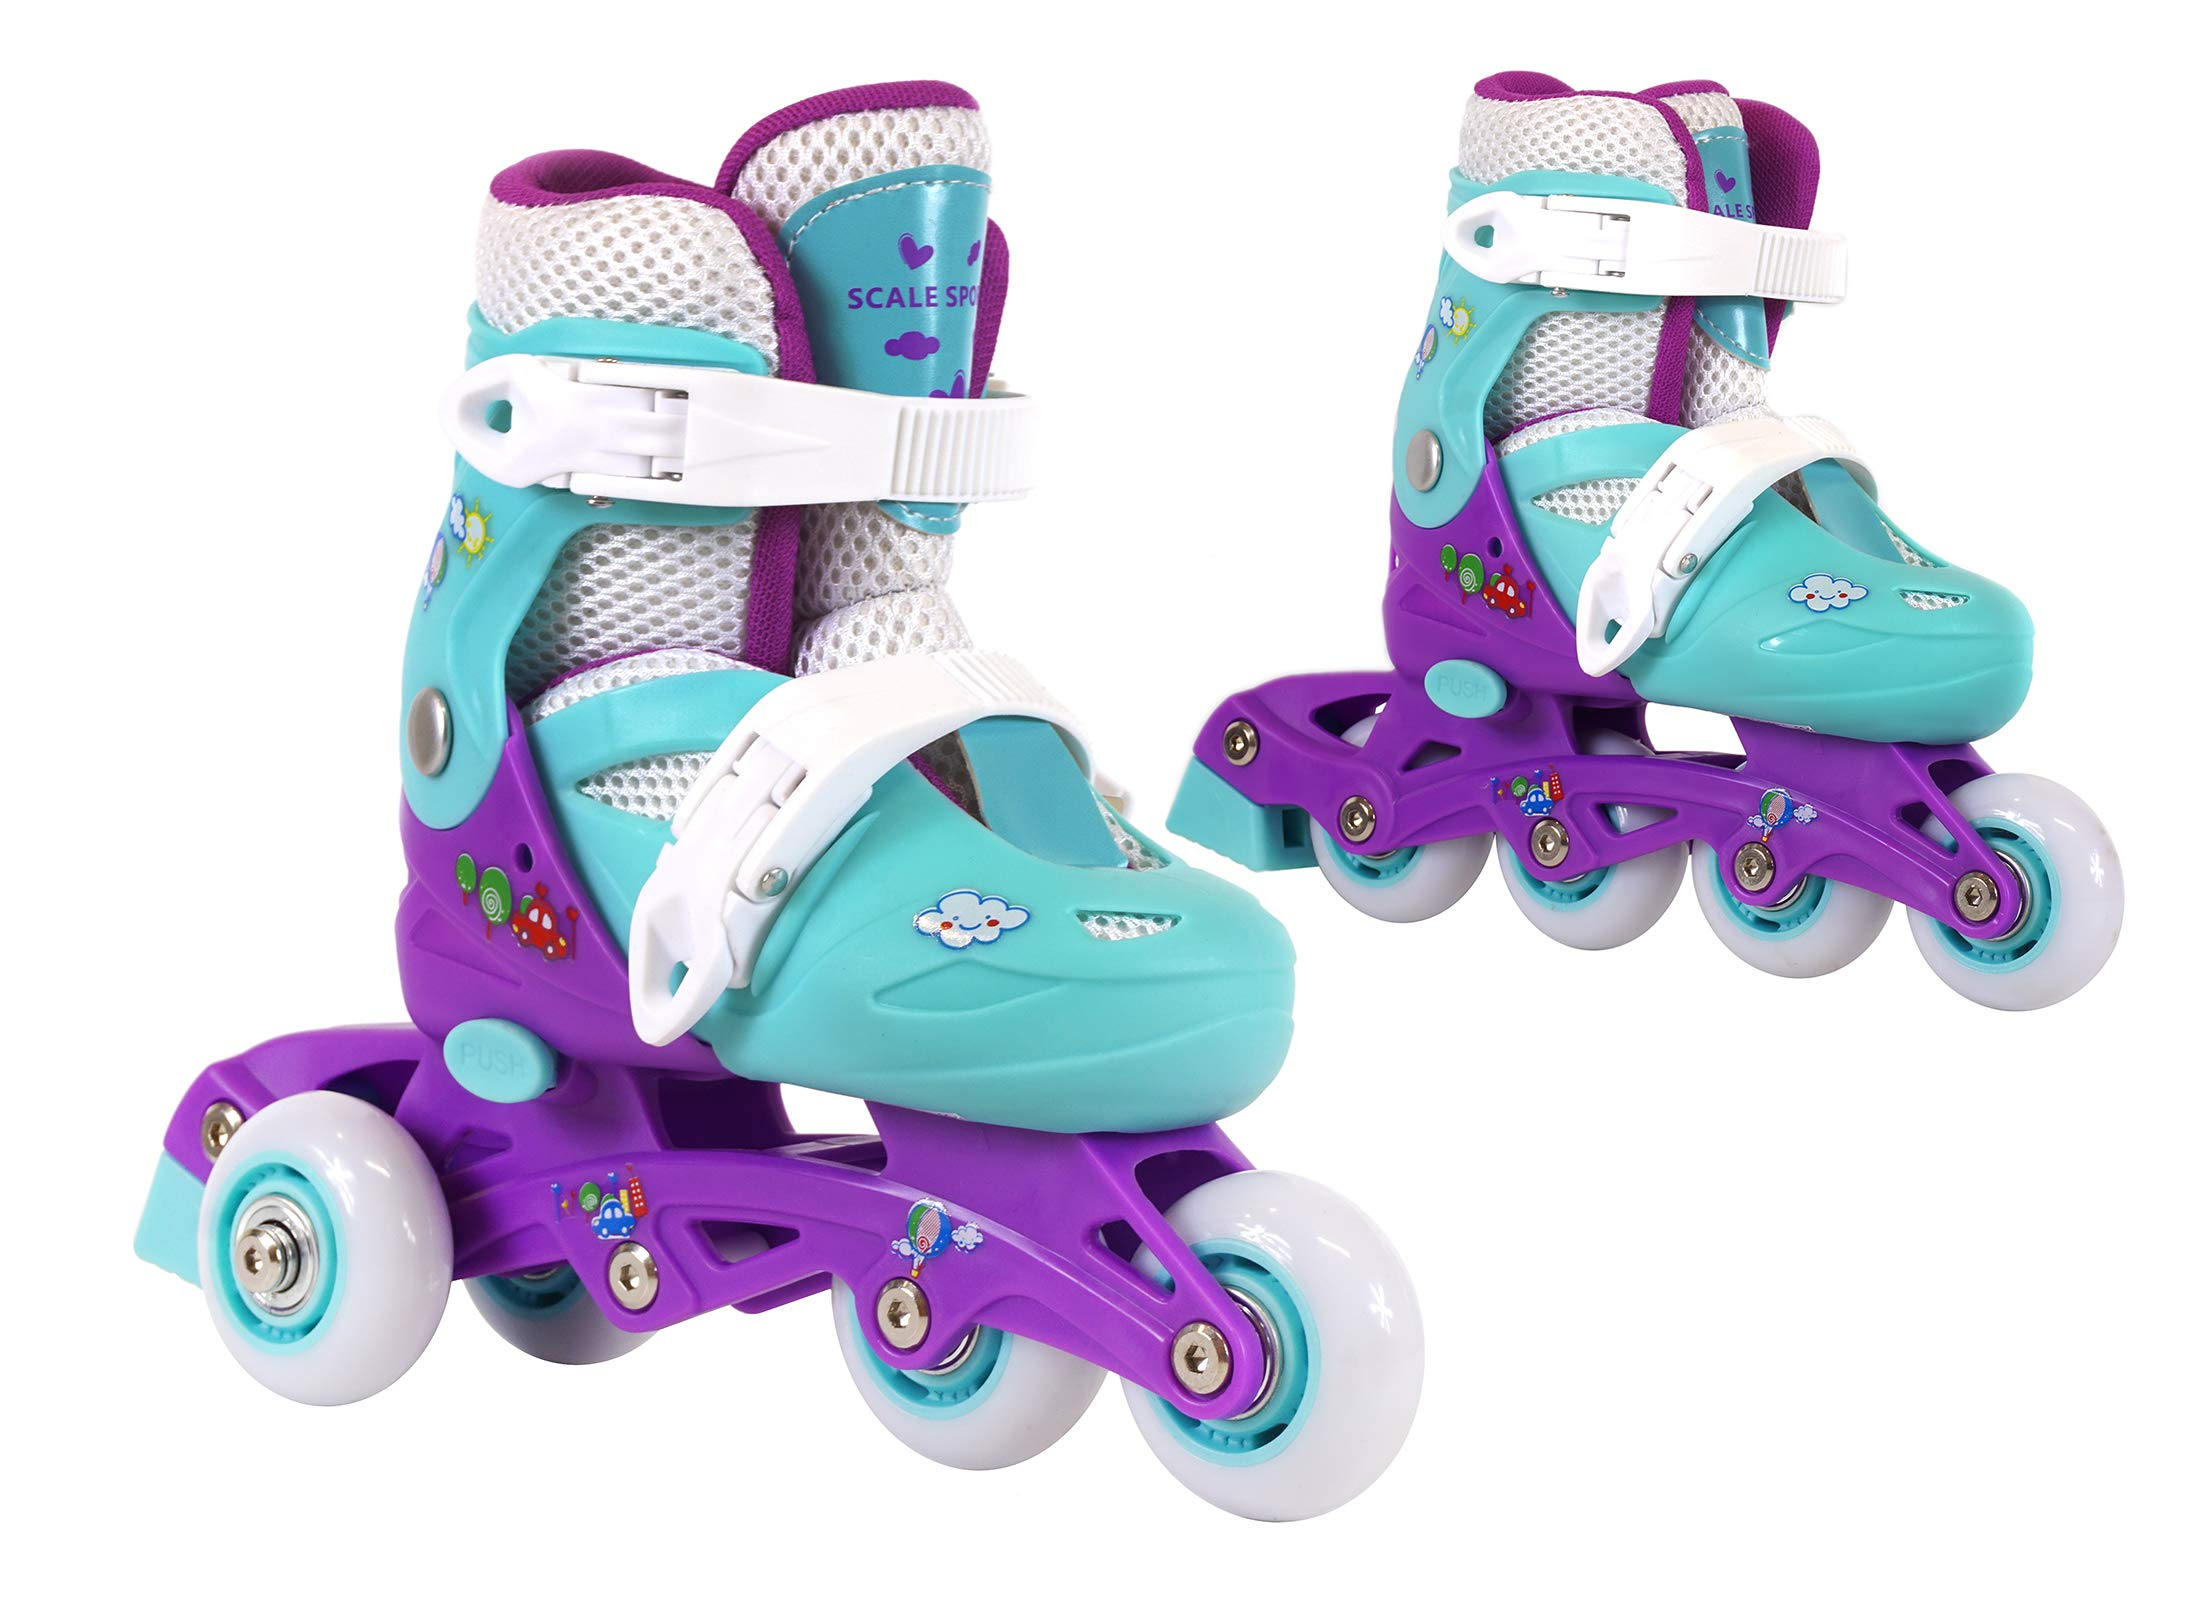 Kids Training Adjustable Skates Combo 3 Wheels 2 in 1 for Preschool Junior Boys and Girls Perfect First Inline Skates Child Roller Skates